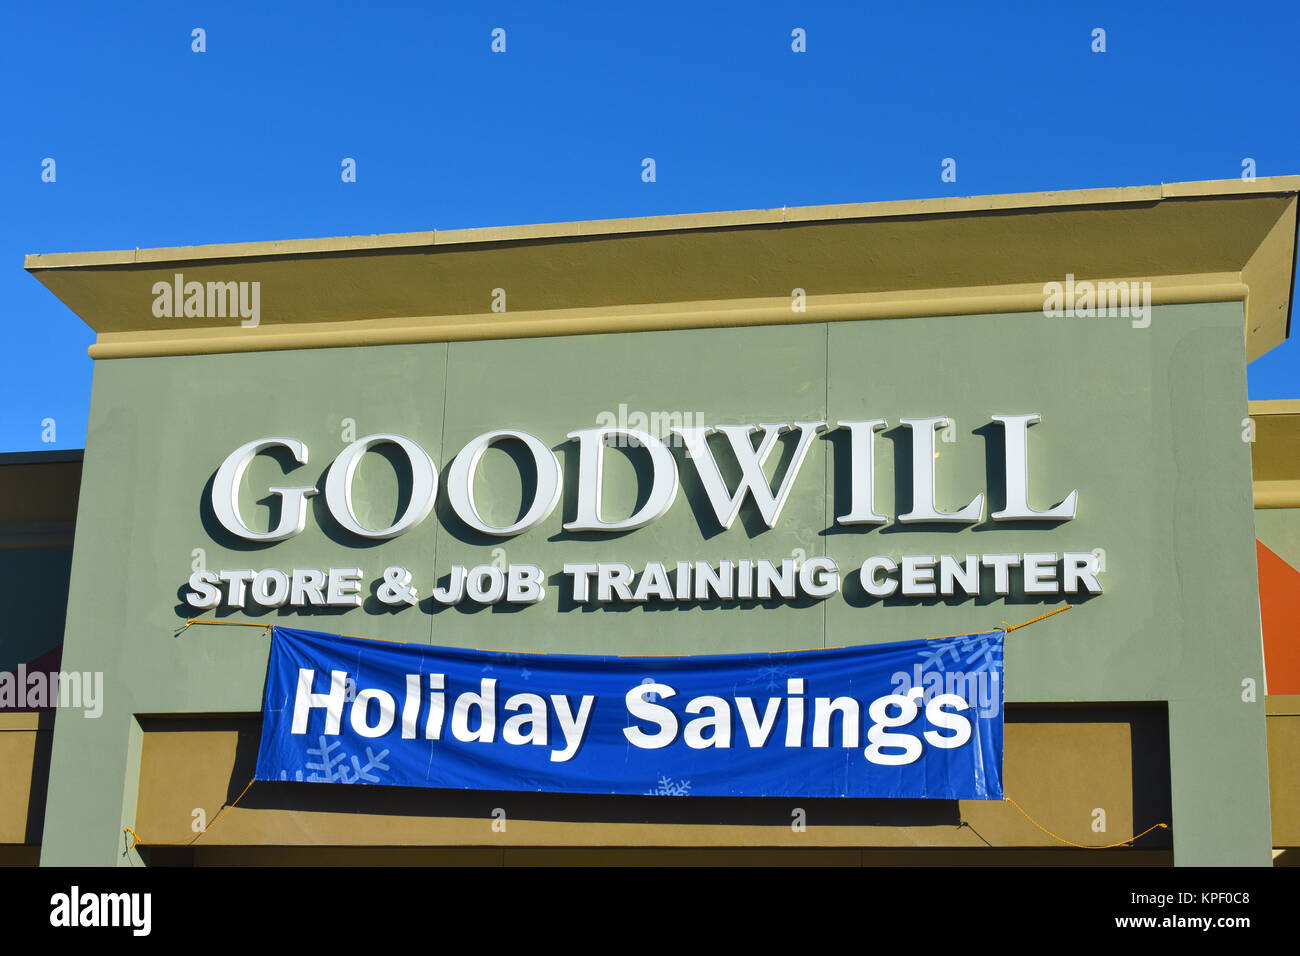 Good Will store and job training center in Bellingham, WA, USA. - Stock Image